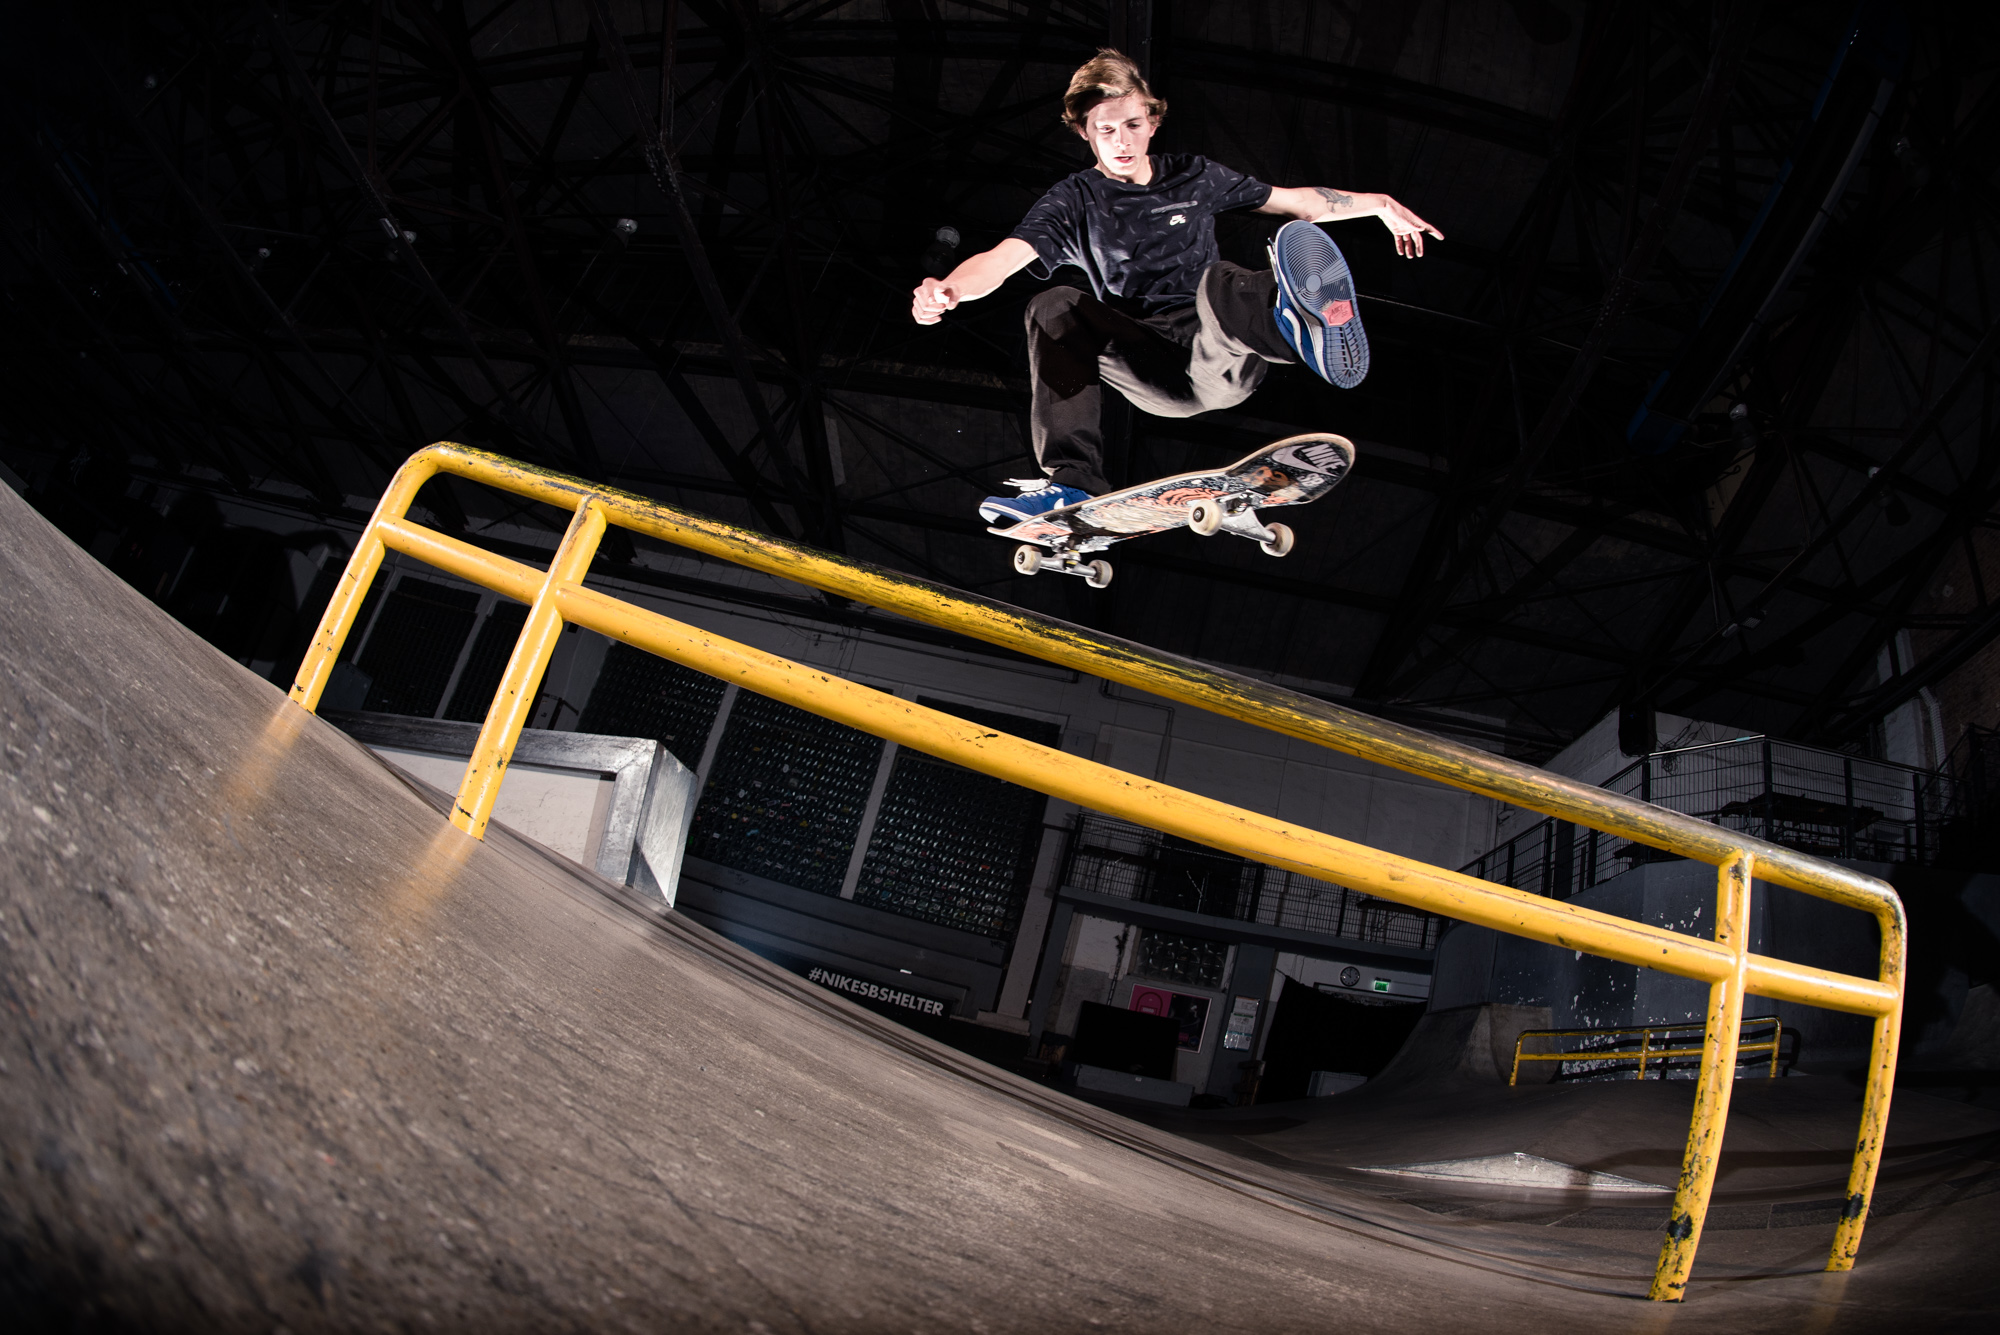 Justin_OnefootOllie_Frontboard-Scholz